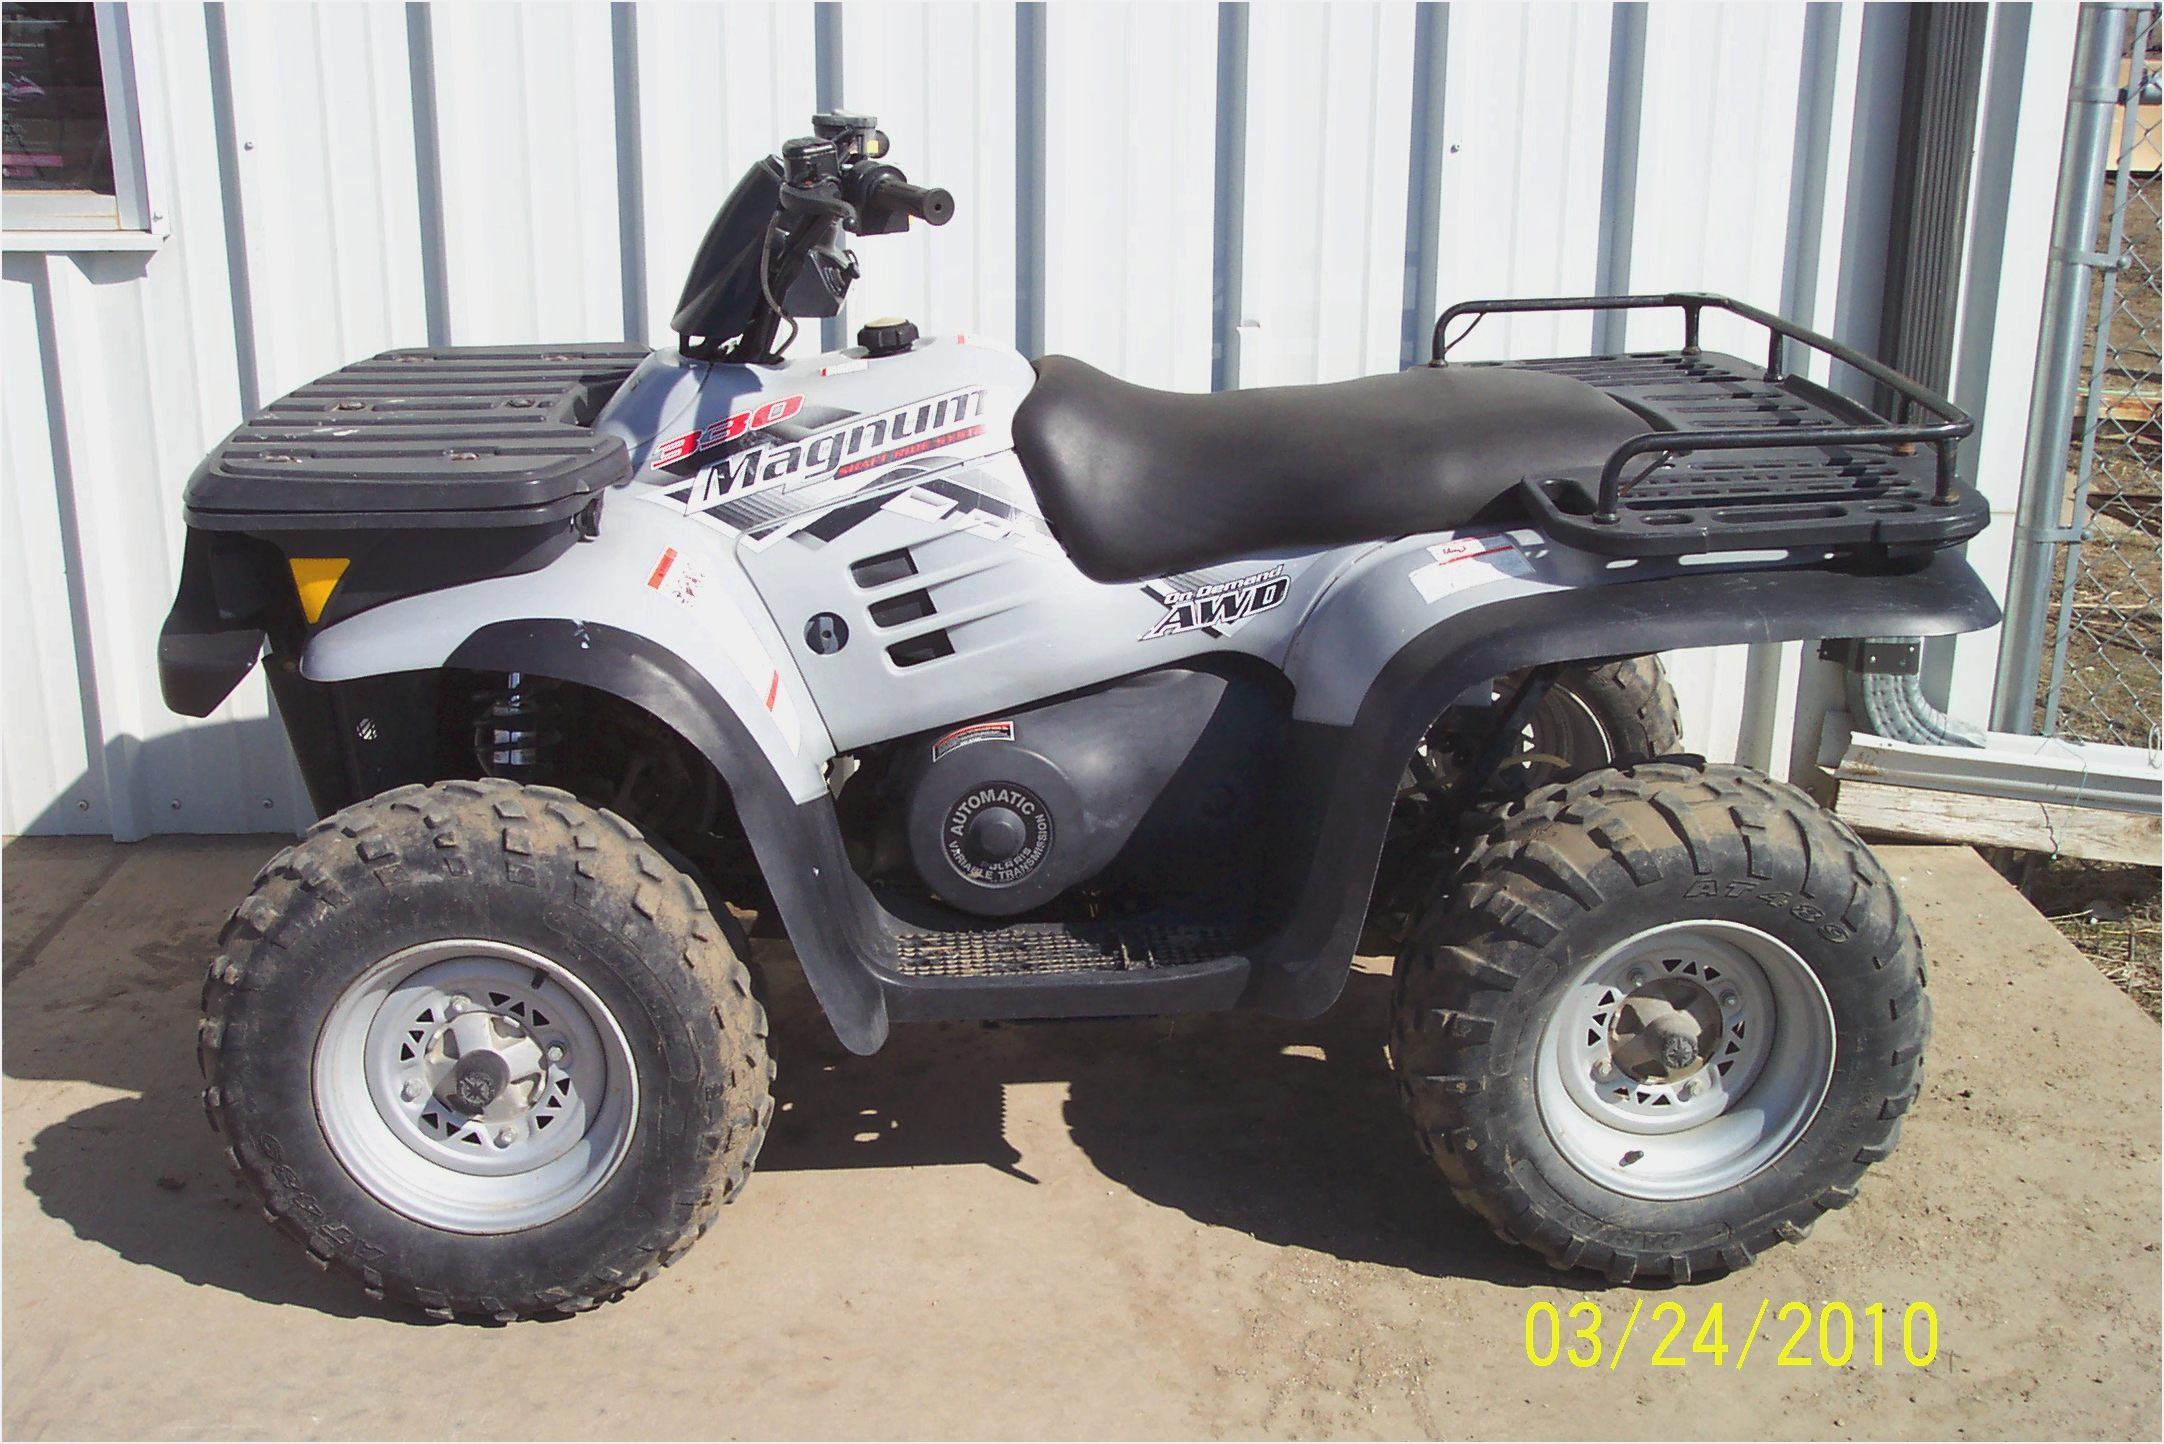 2001 Polaris Magnum 325 Specs Wiring Diagram Pics And List Of Seriess Year 2164x1444